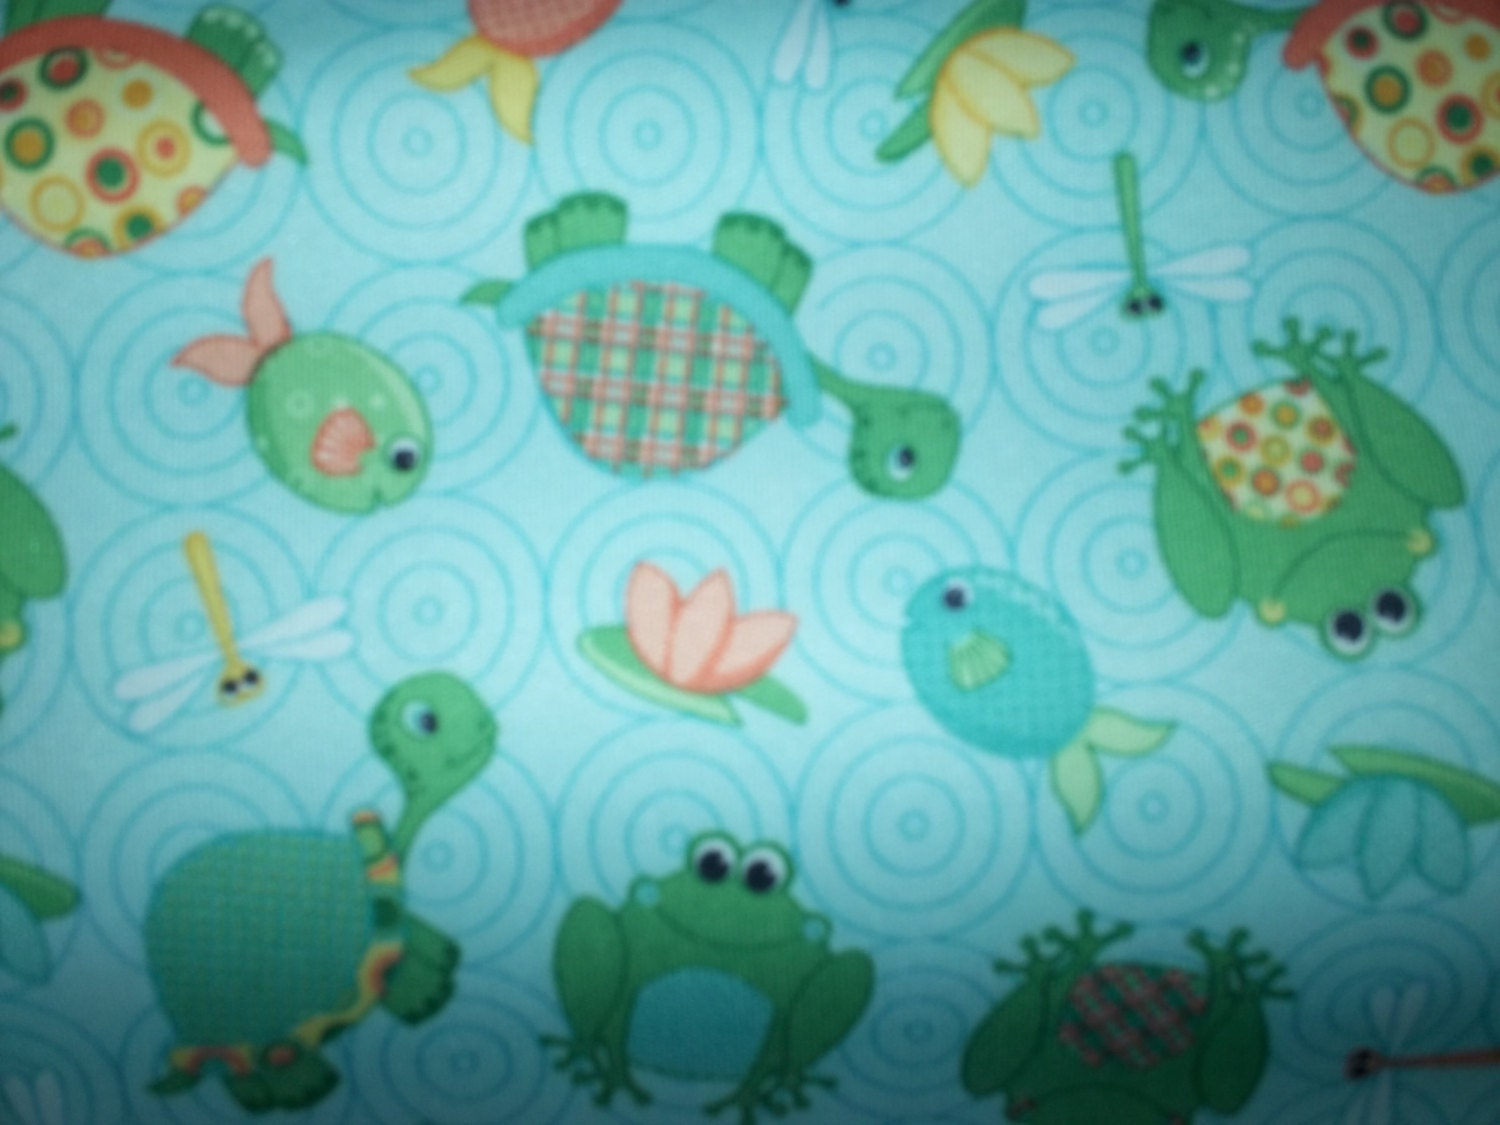 Pul fabric by the yard w turtles fish by soglad2sew on etsy for Fish fabric by the yard